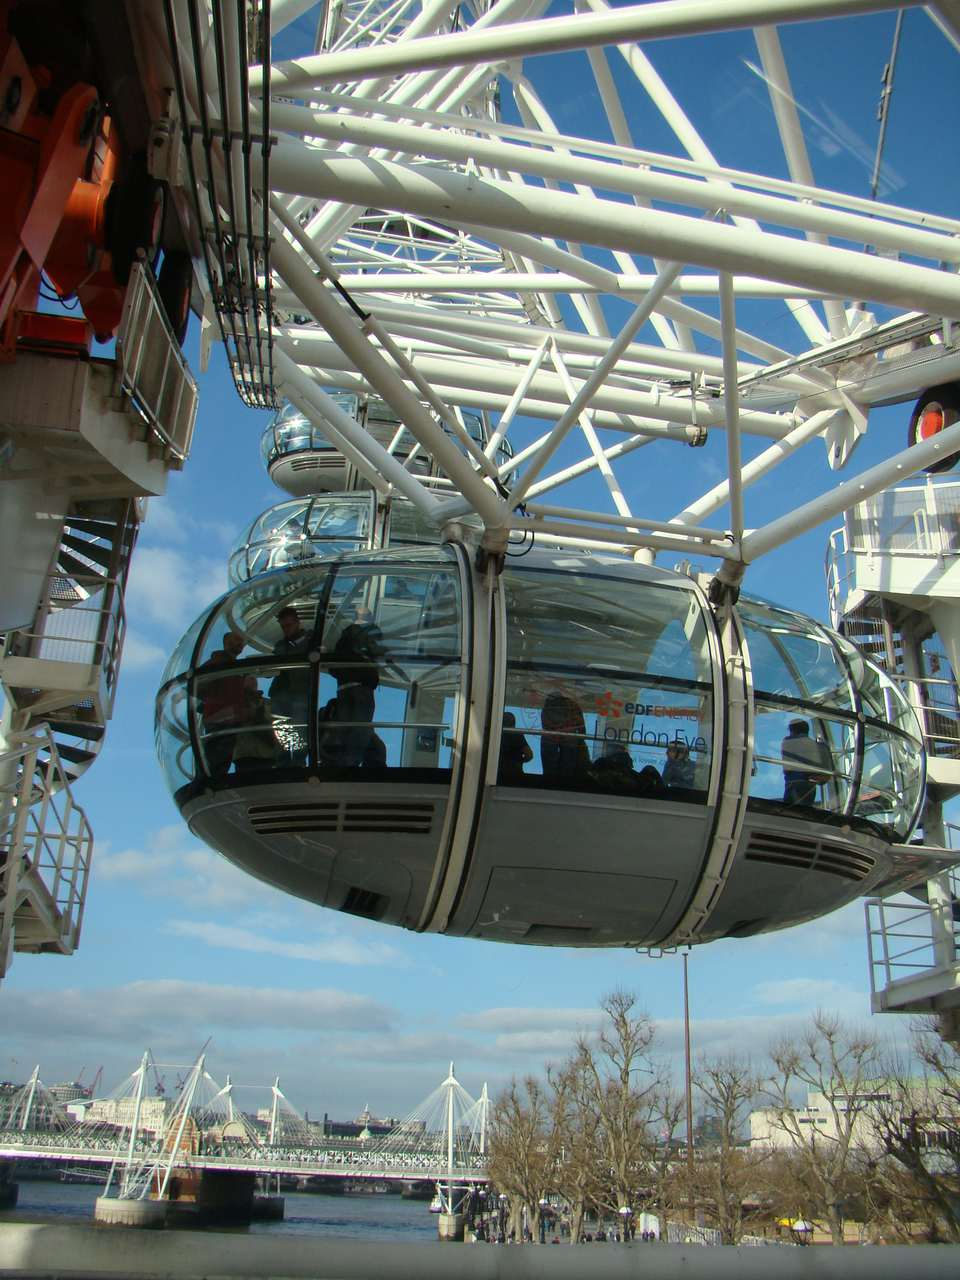 The London Eye is a popular but expensive attraction.